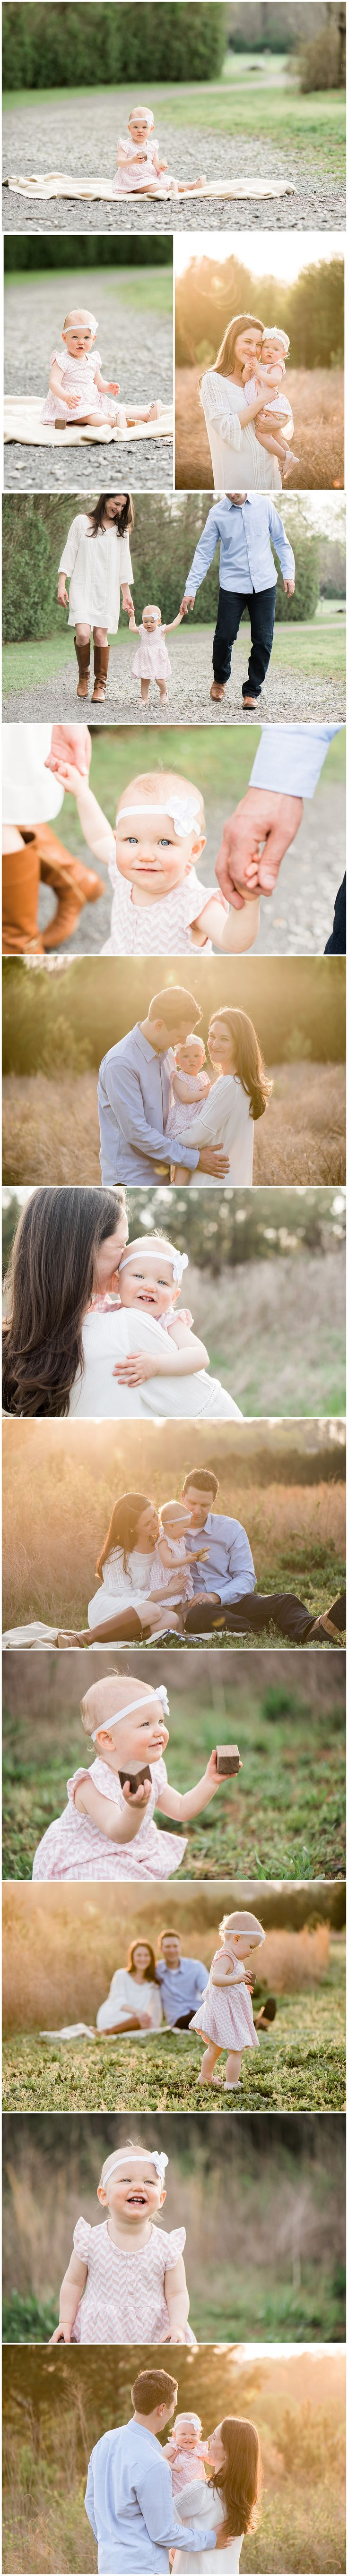 Heather Carraway Photography | atlanta baby photographer, atlanta baby and family photographer, one year old photo session in atlanta